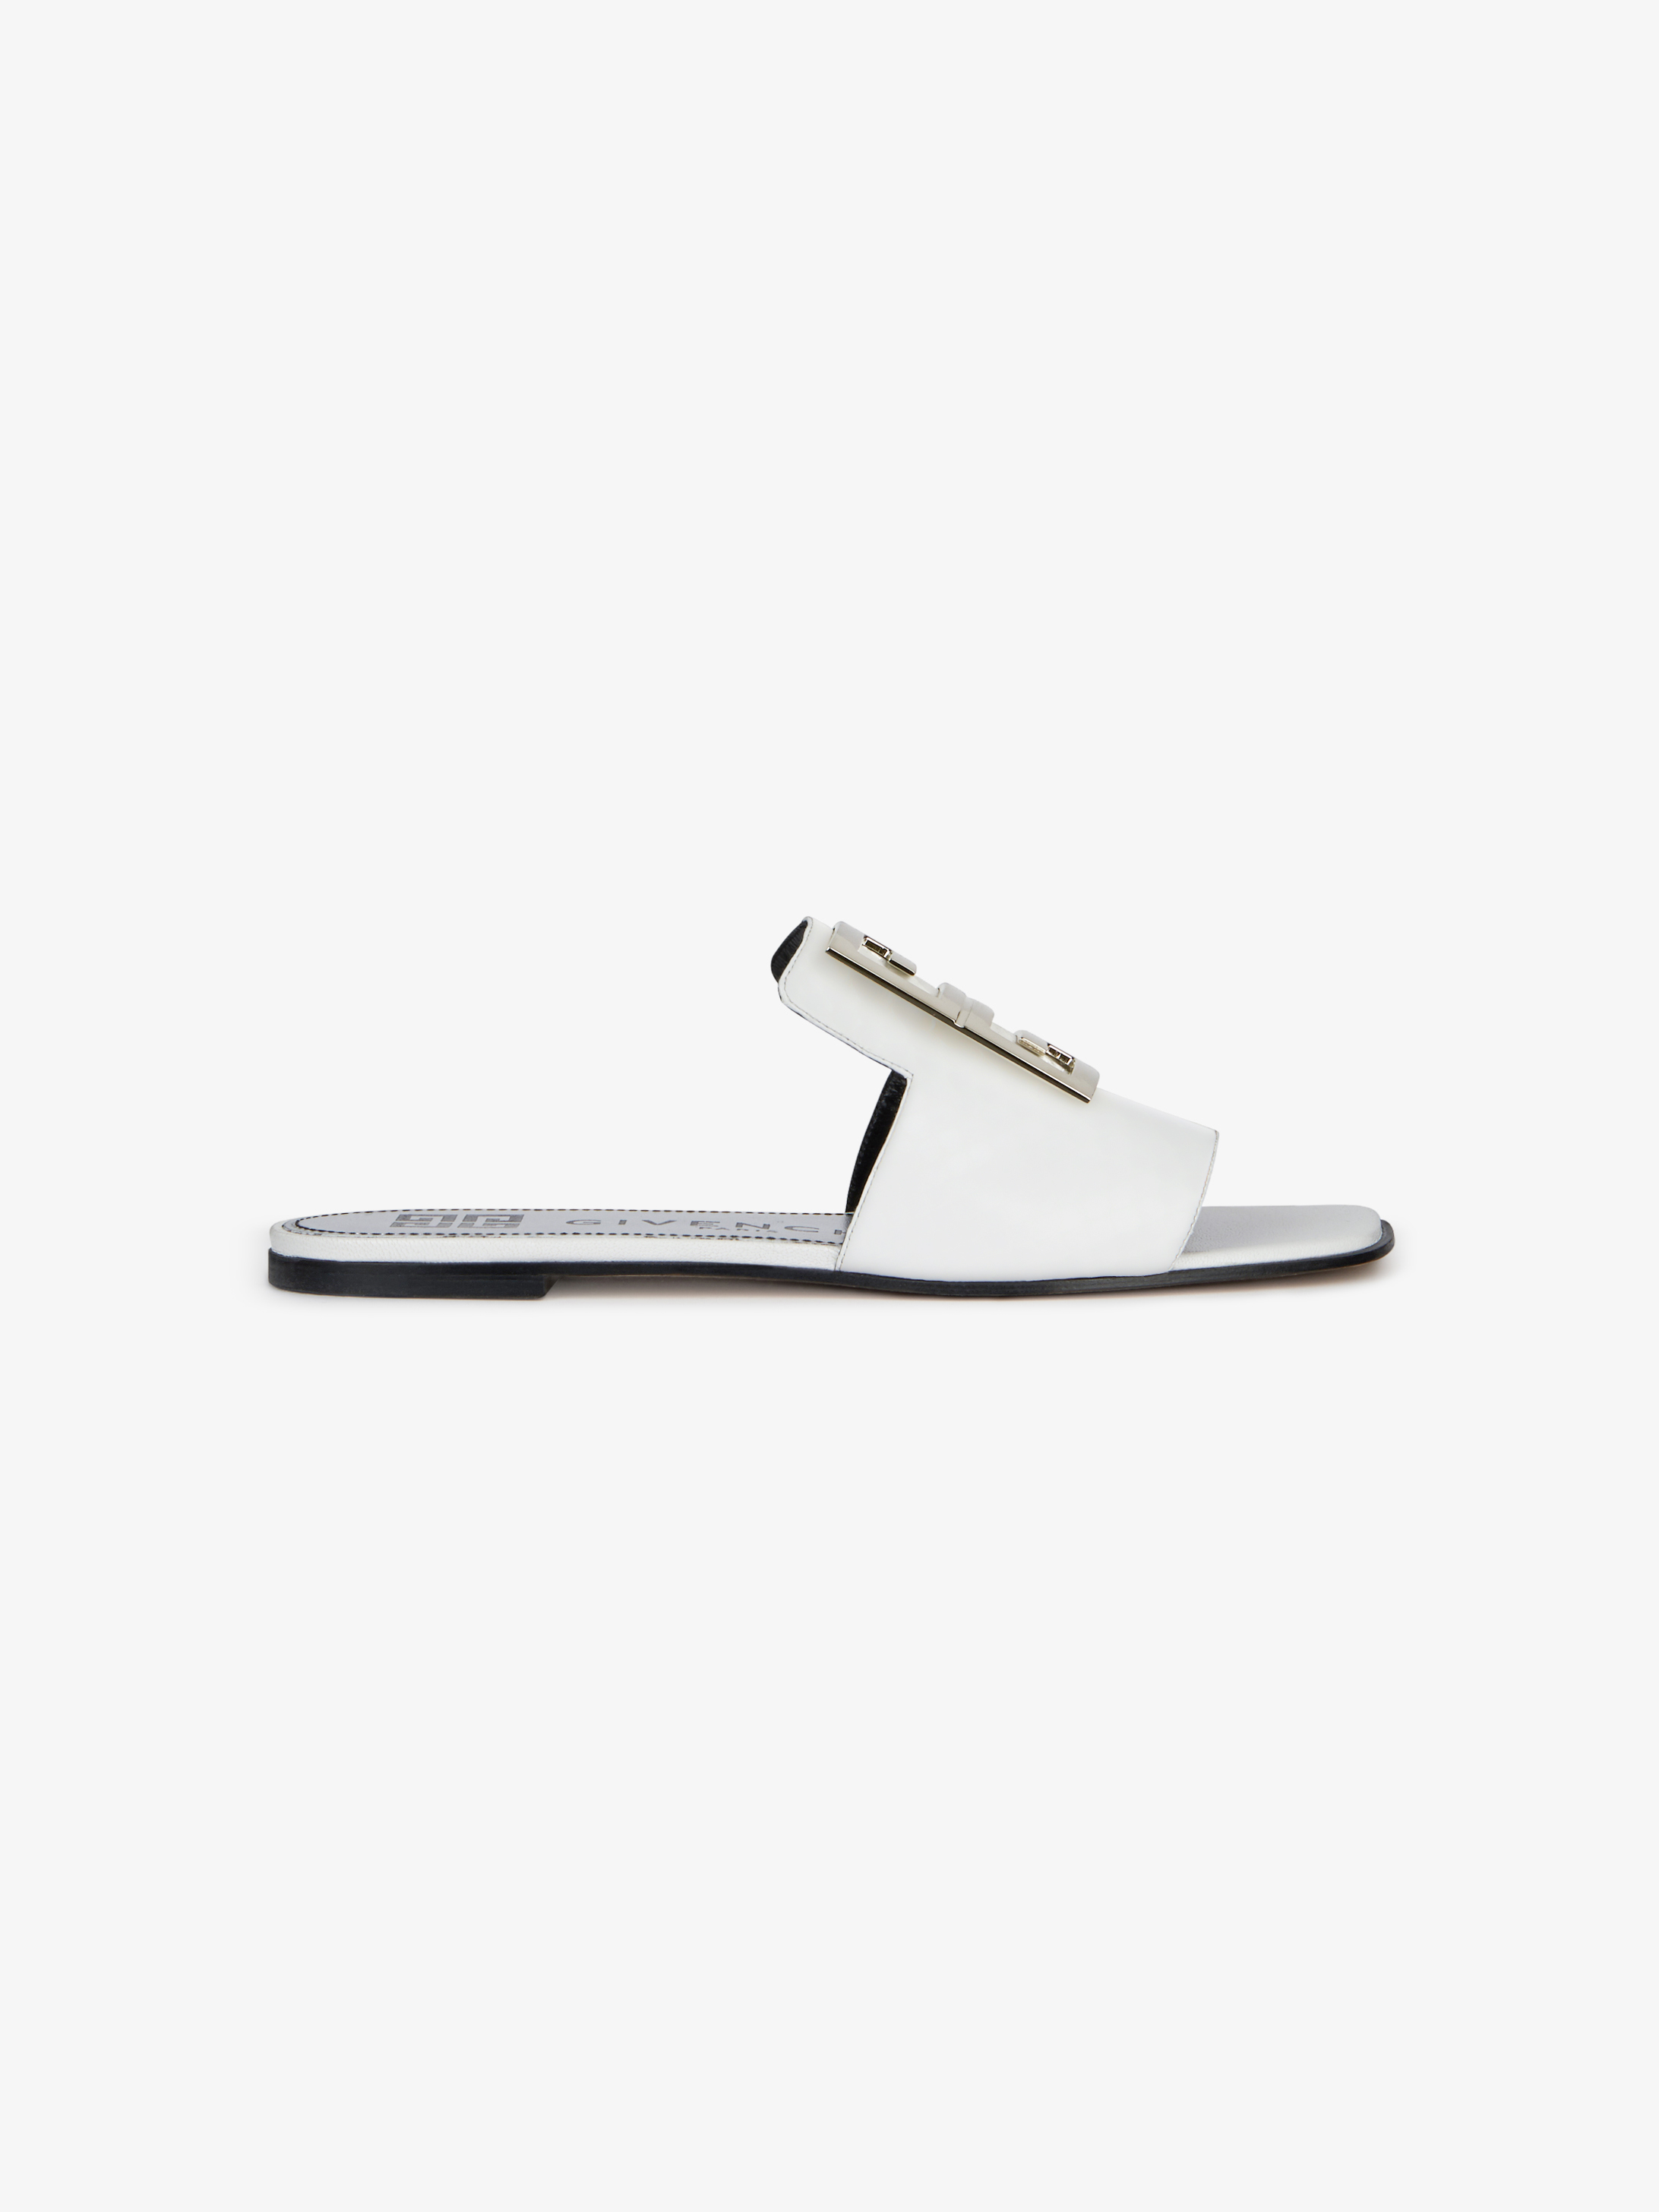 4G sandals in grained leather